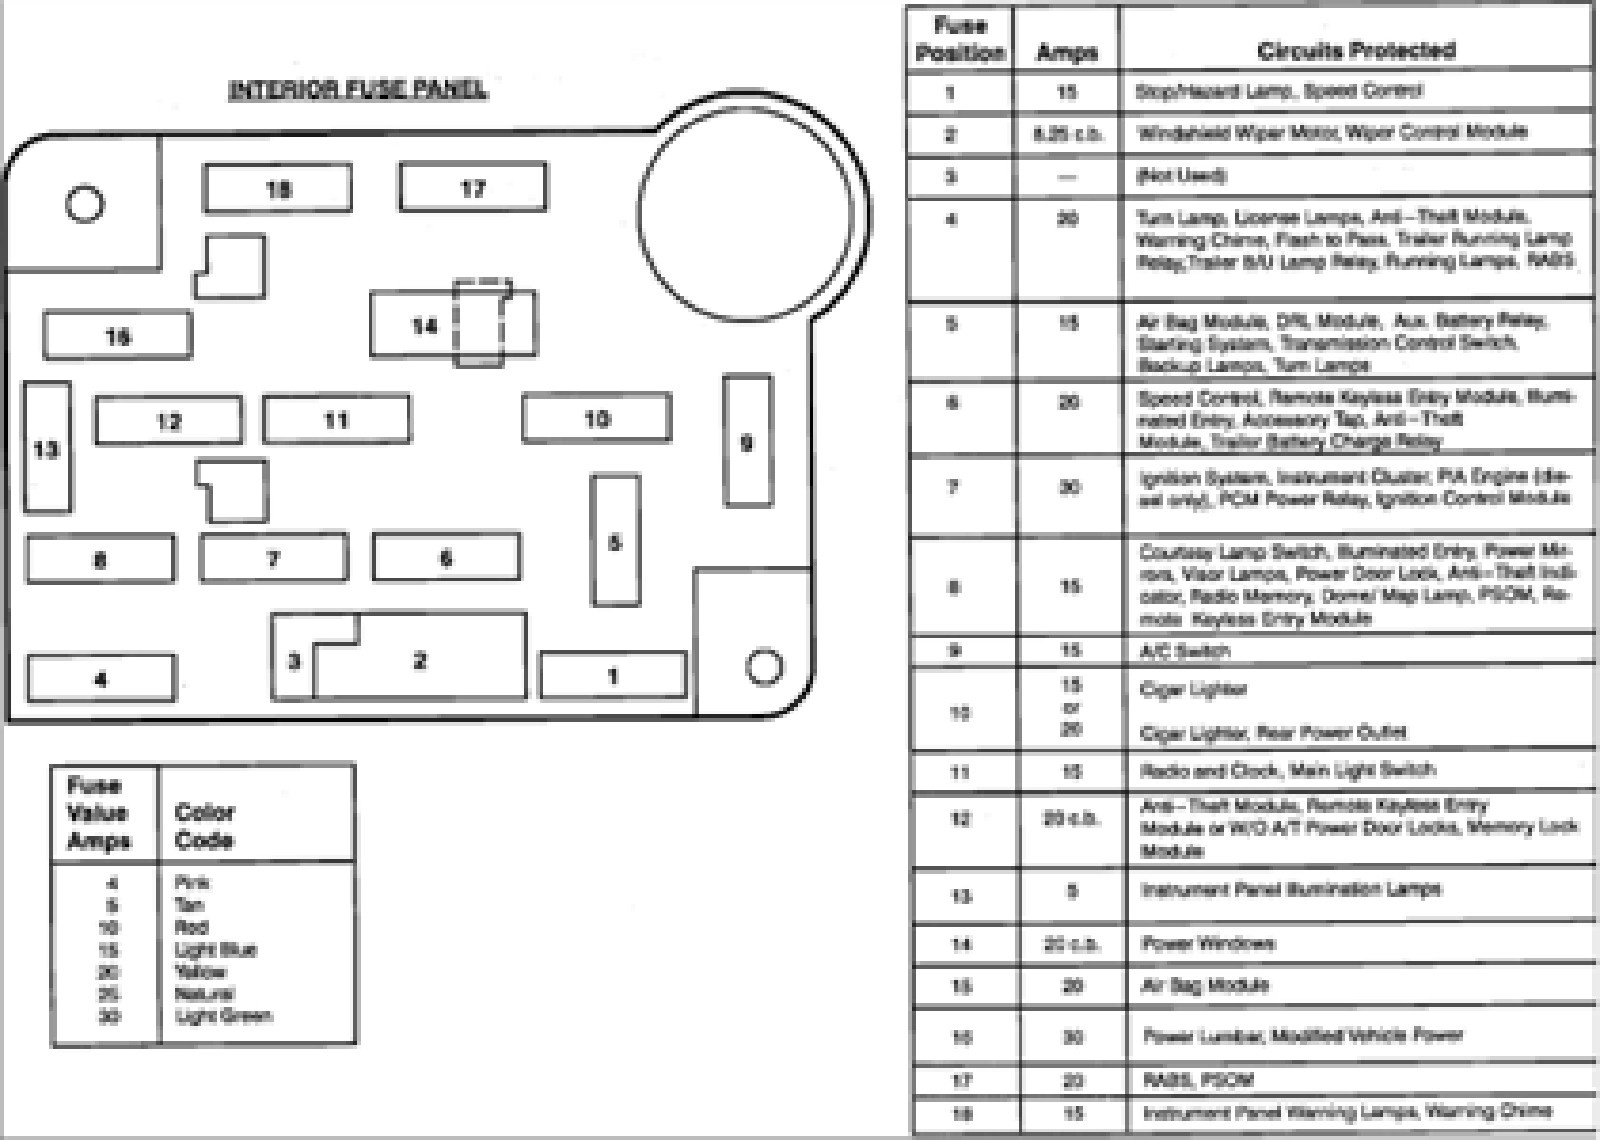 pic 8862473225641007897 1600x1200 1996 ford f150 fuse box 1996 wiring diagrams instruction 1996 ford f150 fuse box diagram at panicattacktreatment.co